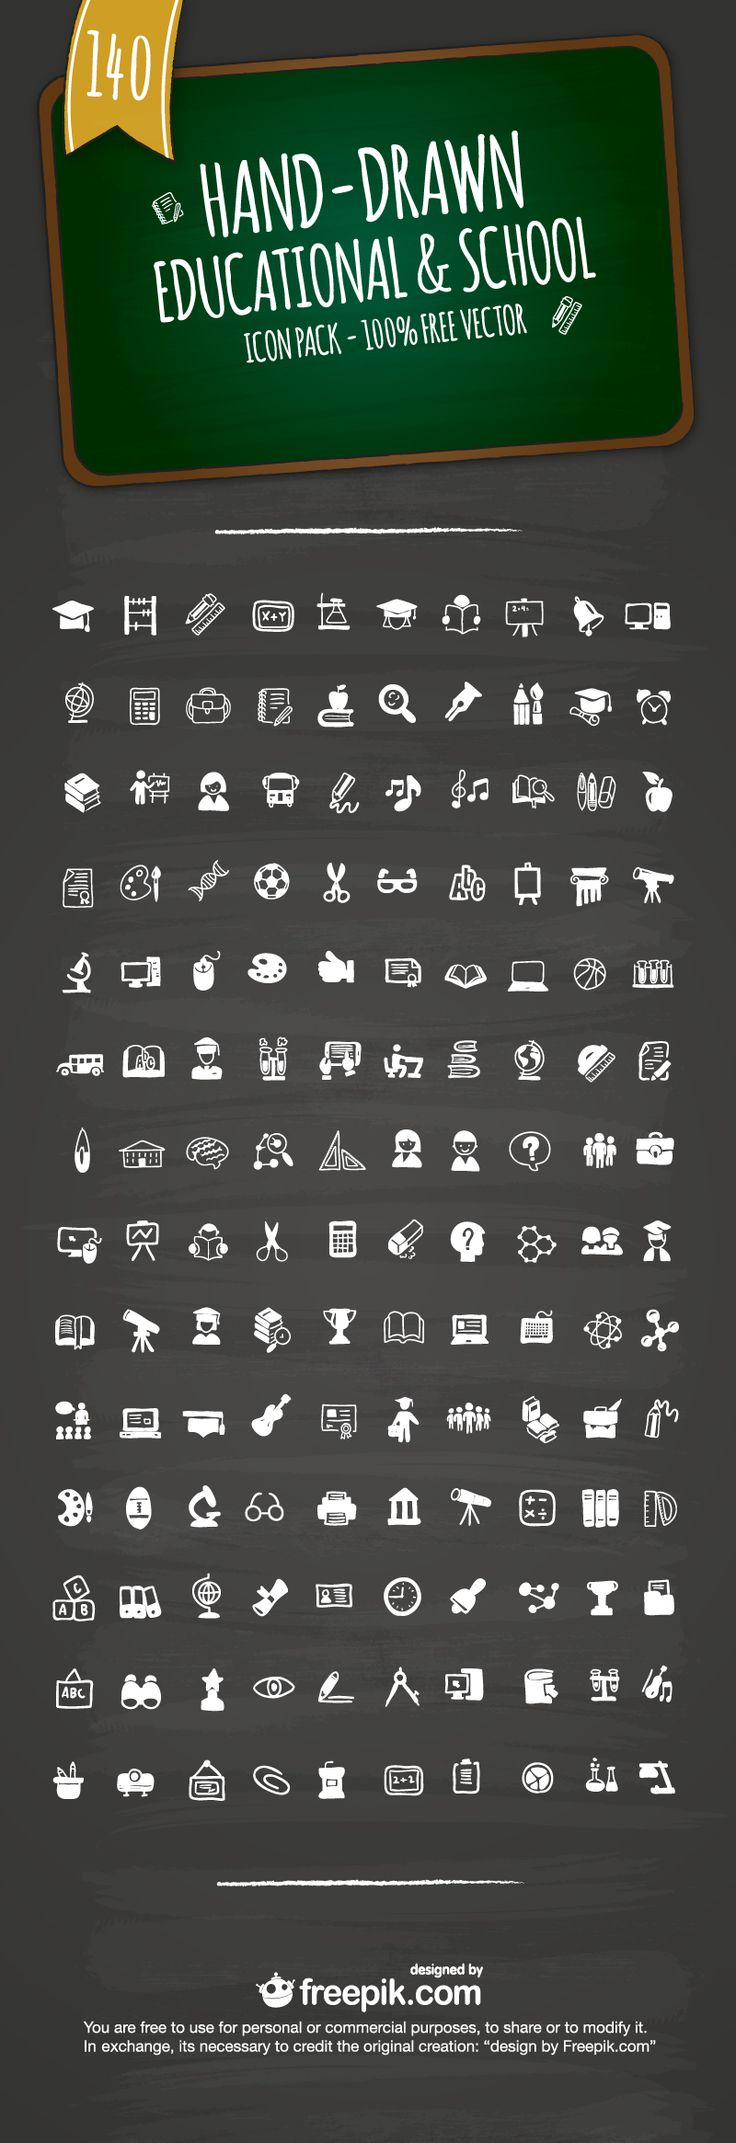 Free Hand-Drawn Educational&School  Icons  http://blog.templatemonster.com/2014/07/30/freebies-pack-hand-drawn-svg-icons/?utm_source=Pinterest&utm_medium=Blog&utm_campaign=FrIcPPPnF